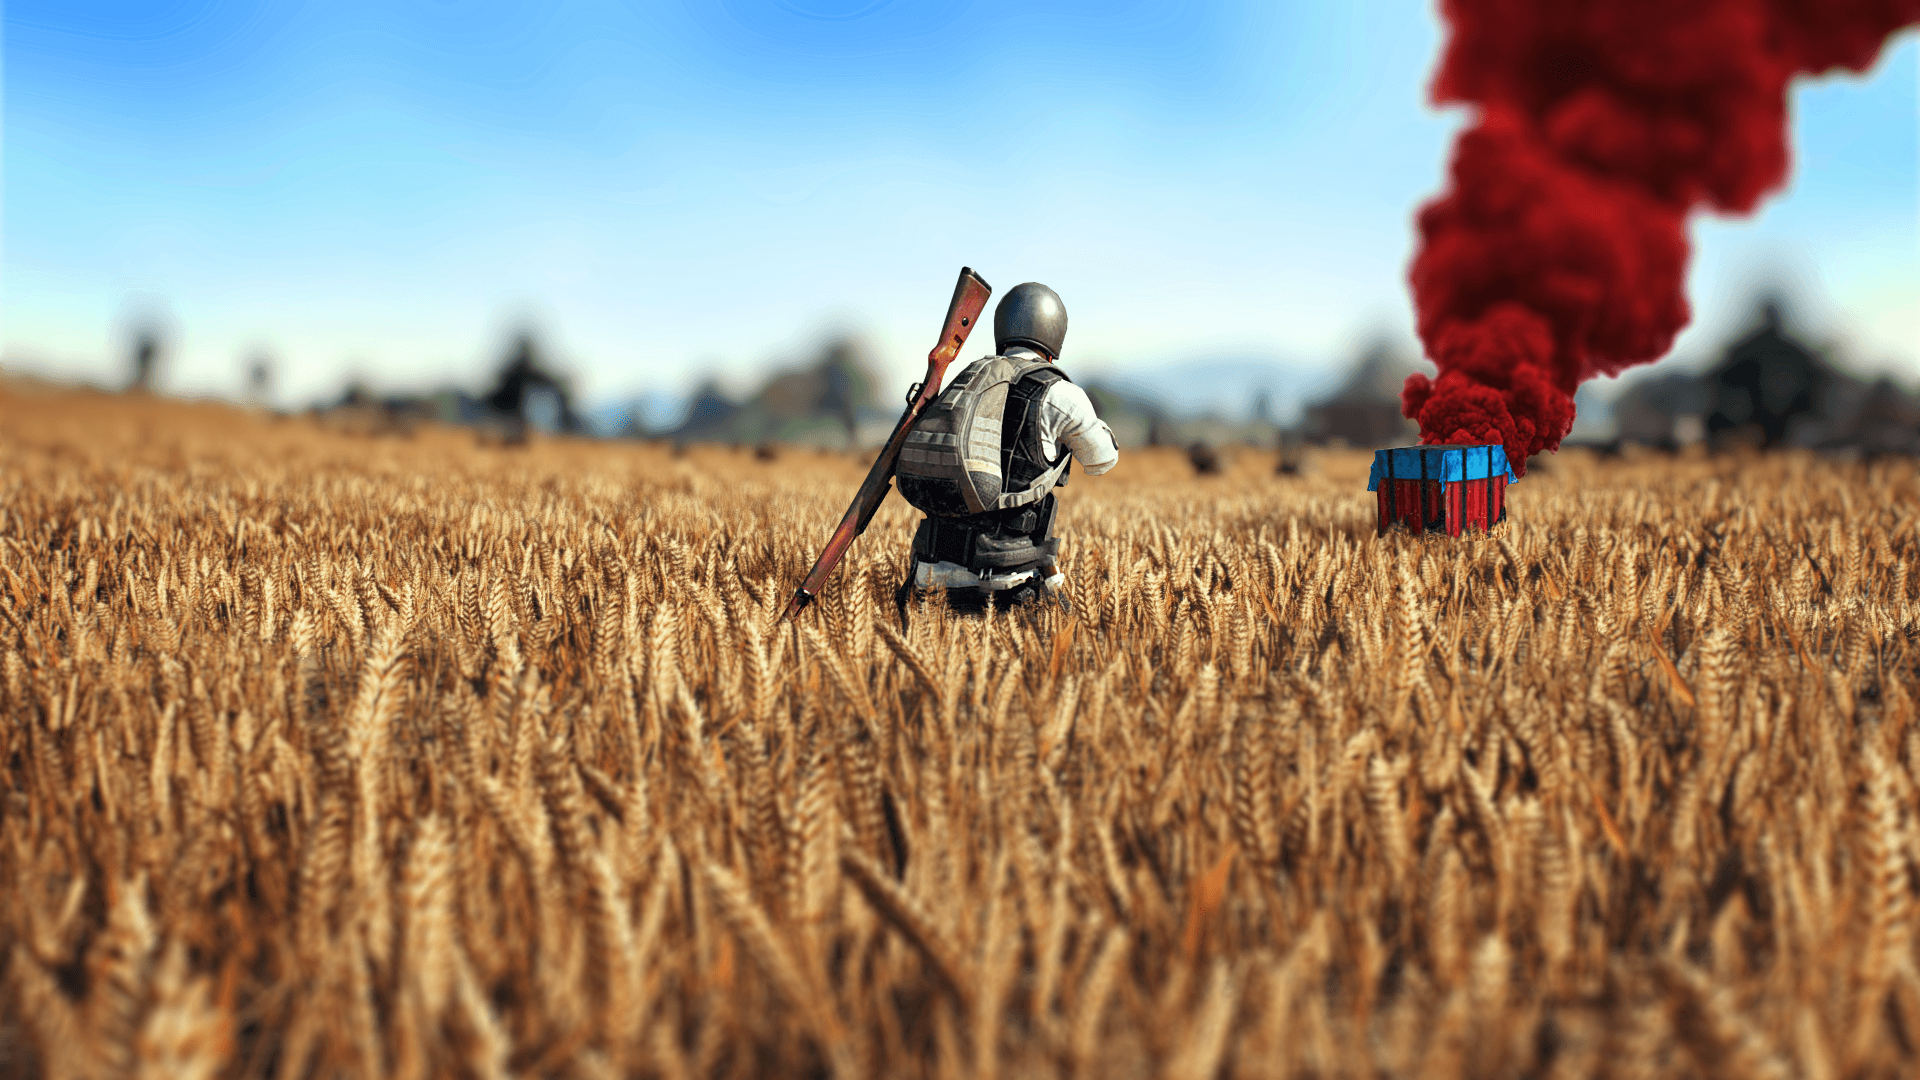 Pubg Wallpaper 4k: PUBG Wallpapers